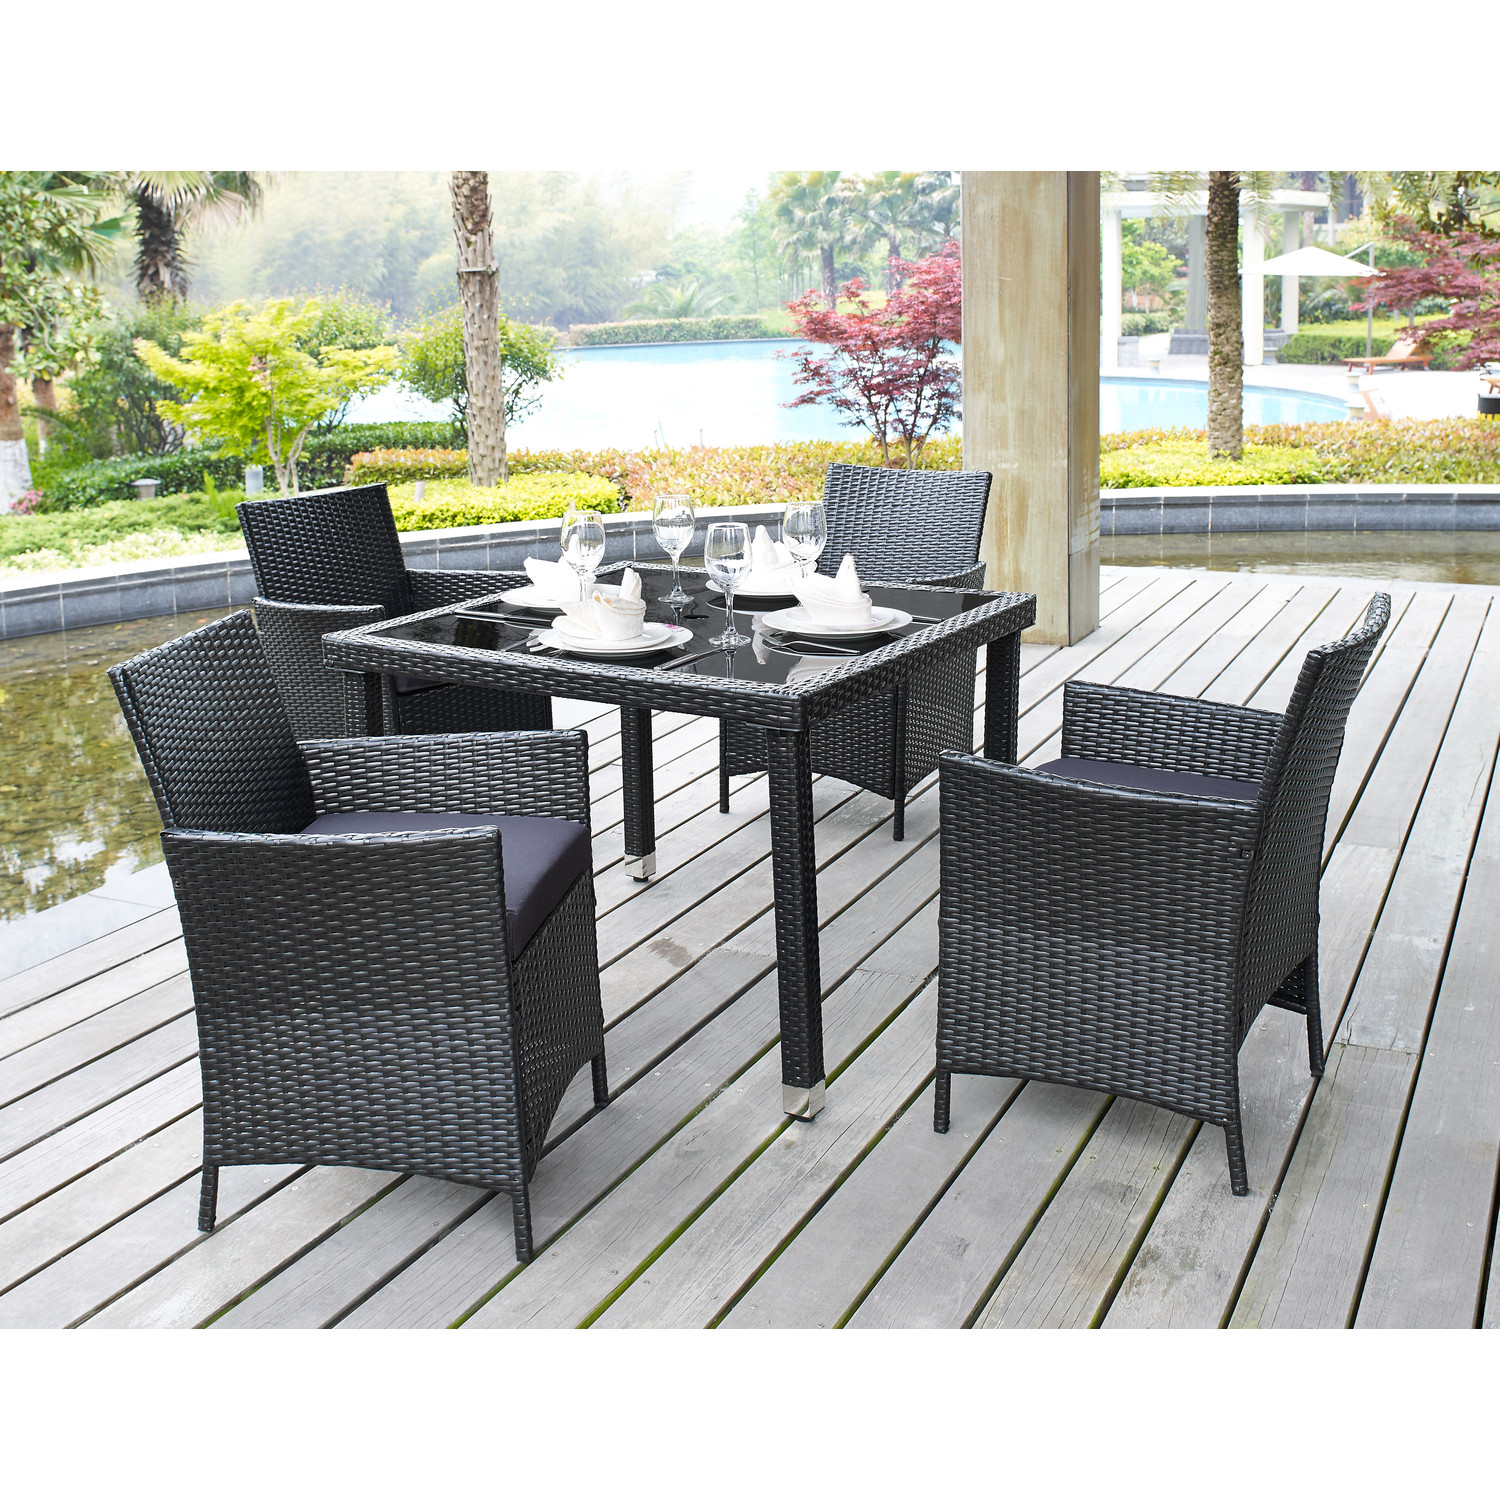 Places to go for affordable modern outdoor furniture for Outdoor furniture places